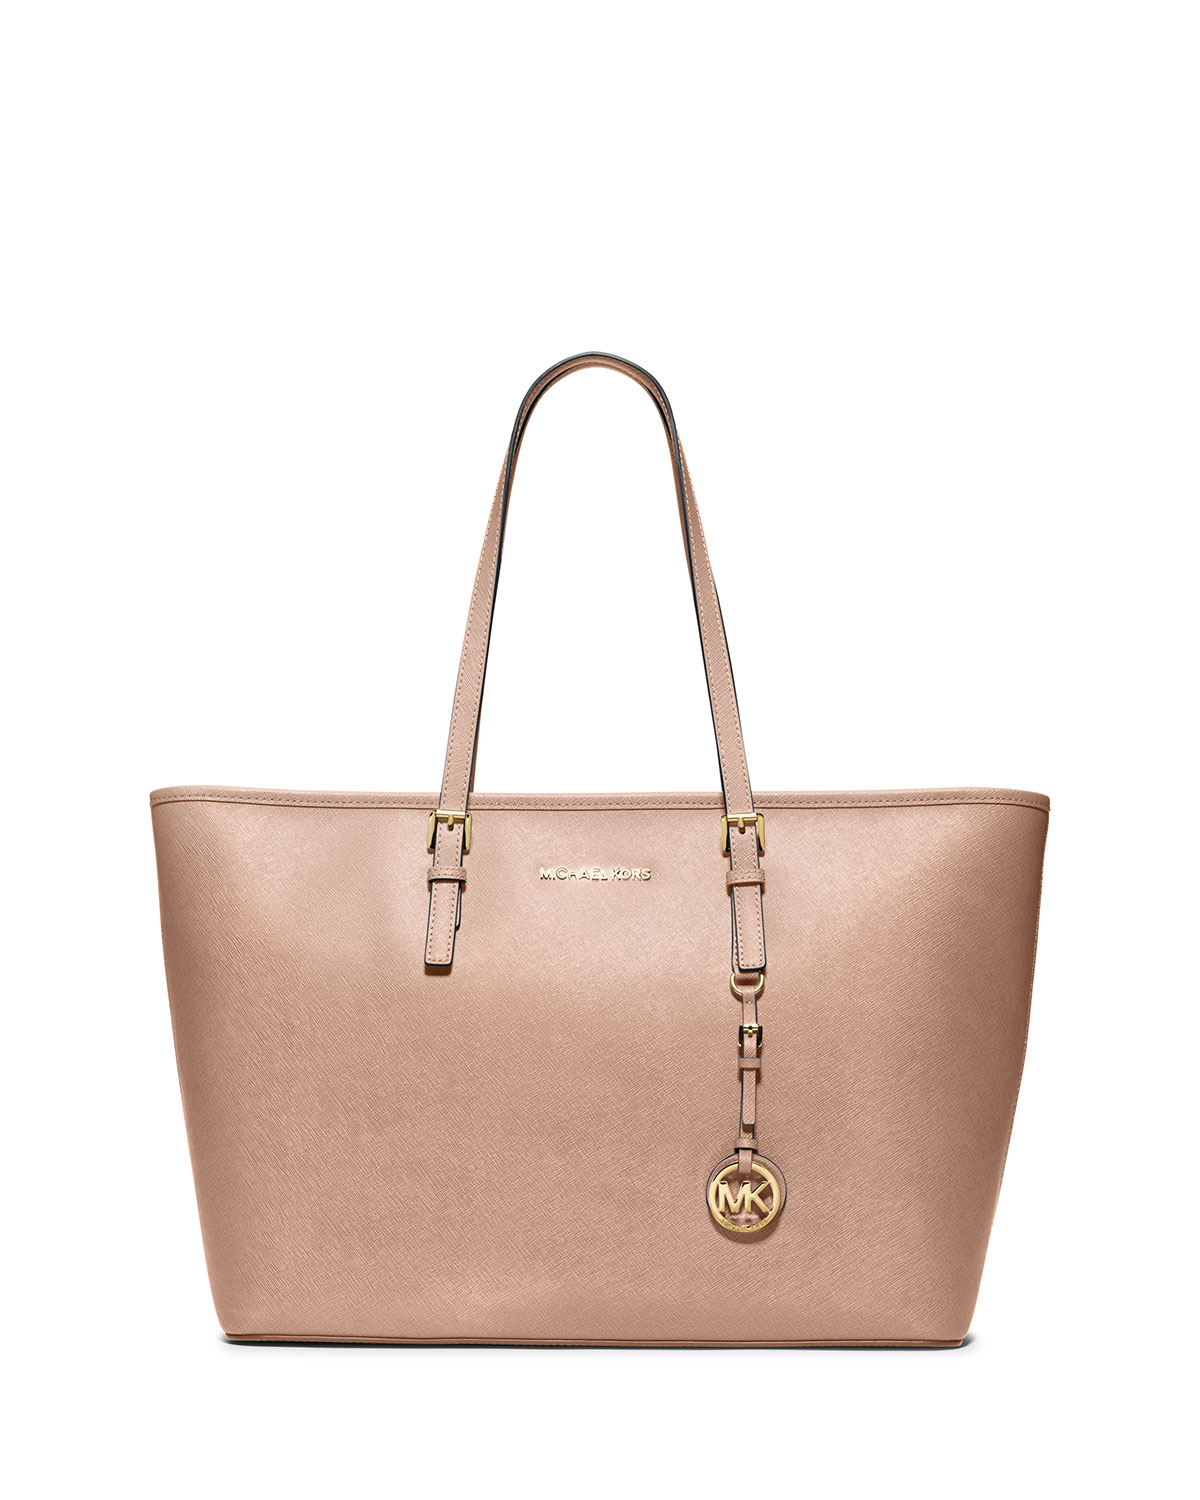 049c6dc10059 MICHAEL Michael Kors Jet Set Travel Medium Saffiano Tote Bag, Blush ...